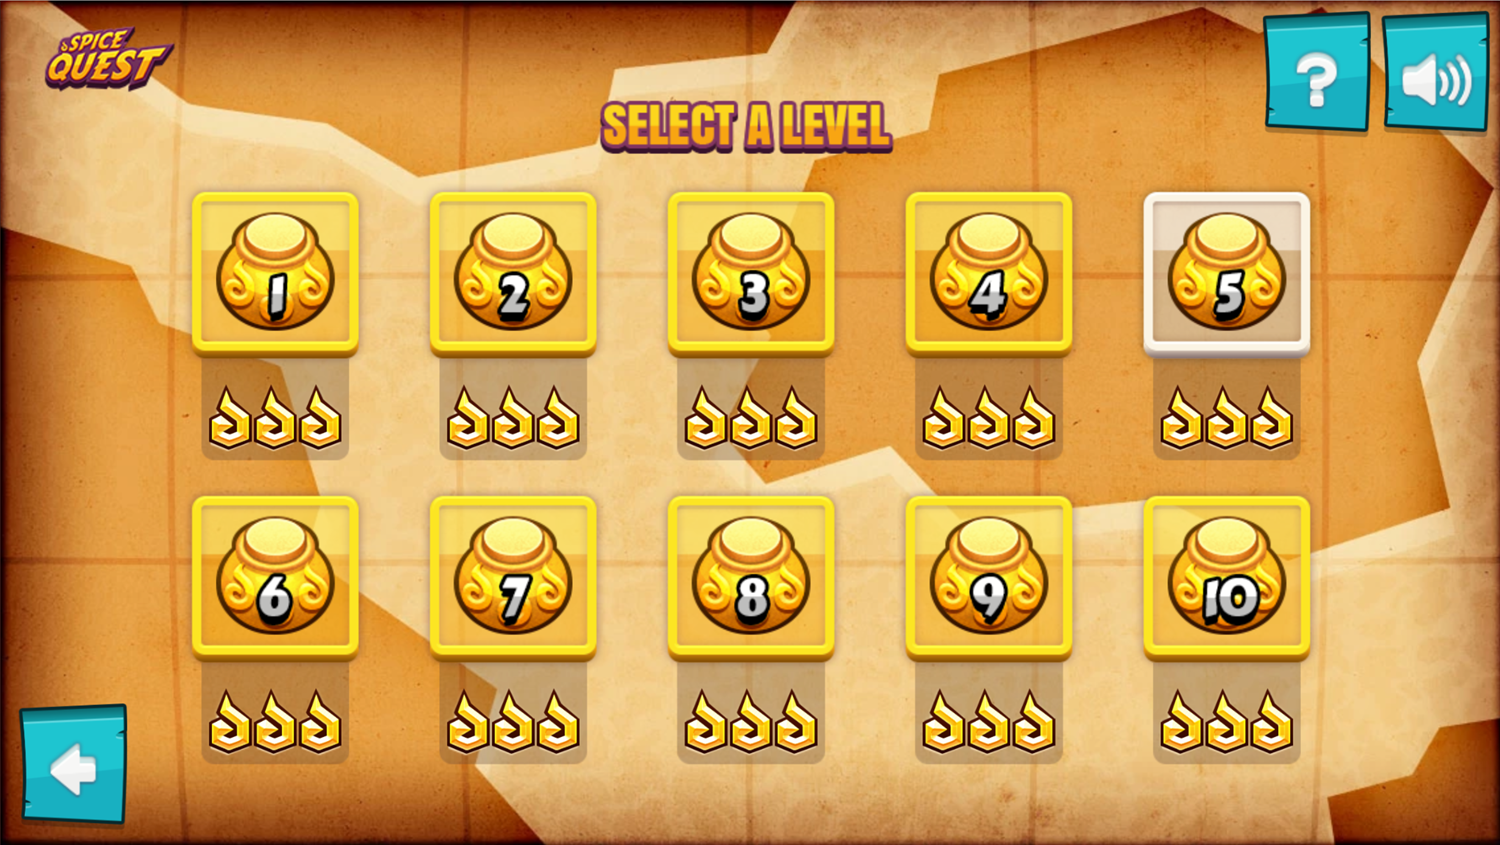 Spice Quest Game Level Select Screen Screenshot.